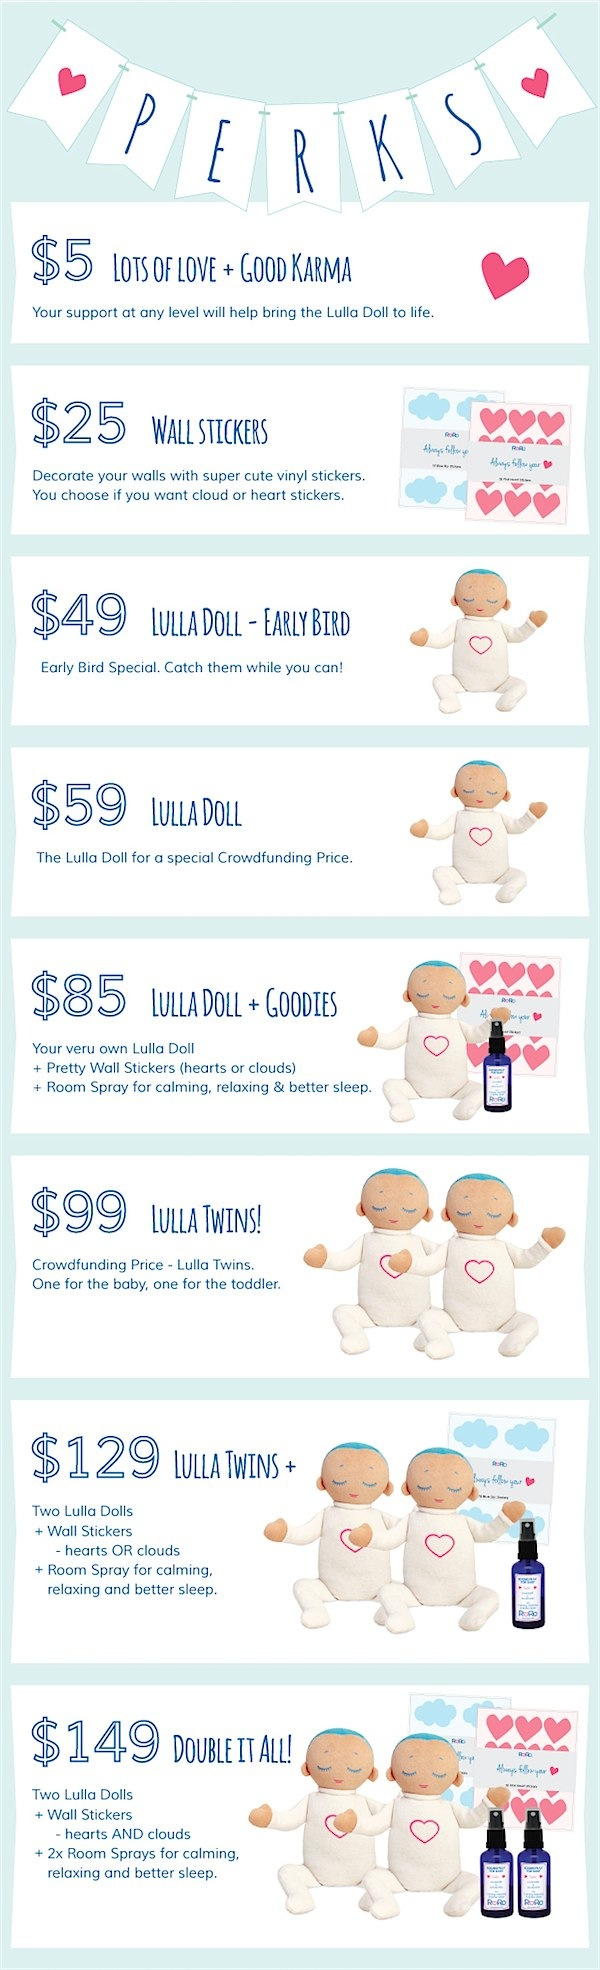 Preorder discounts for the Lulla Doll via Toby & Roo :: daily inspiration for stylish parents and their kids.